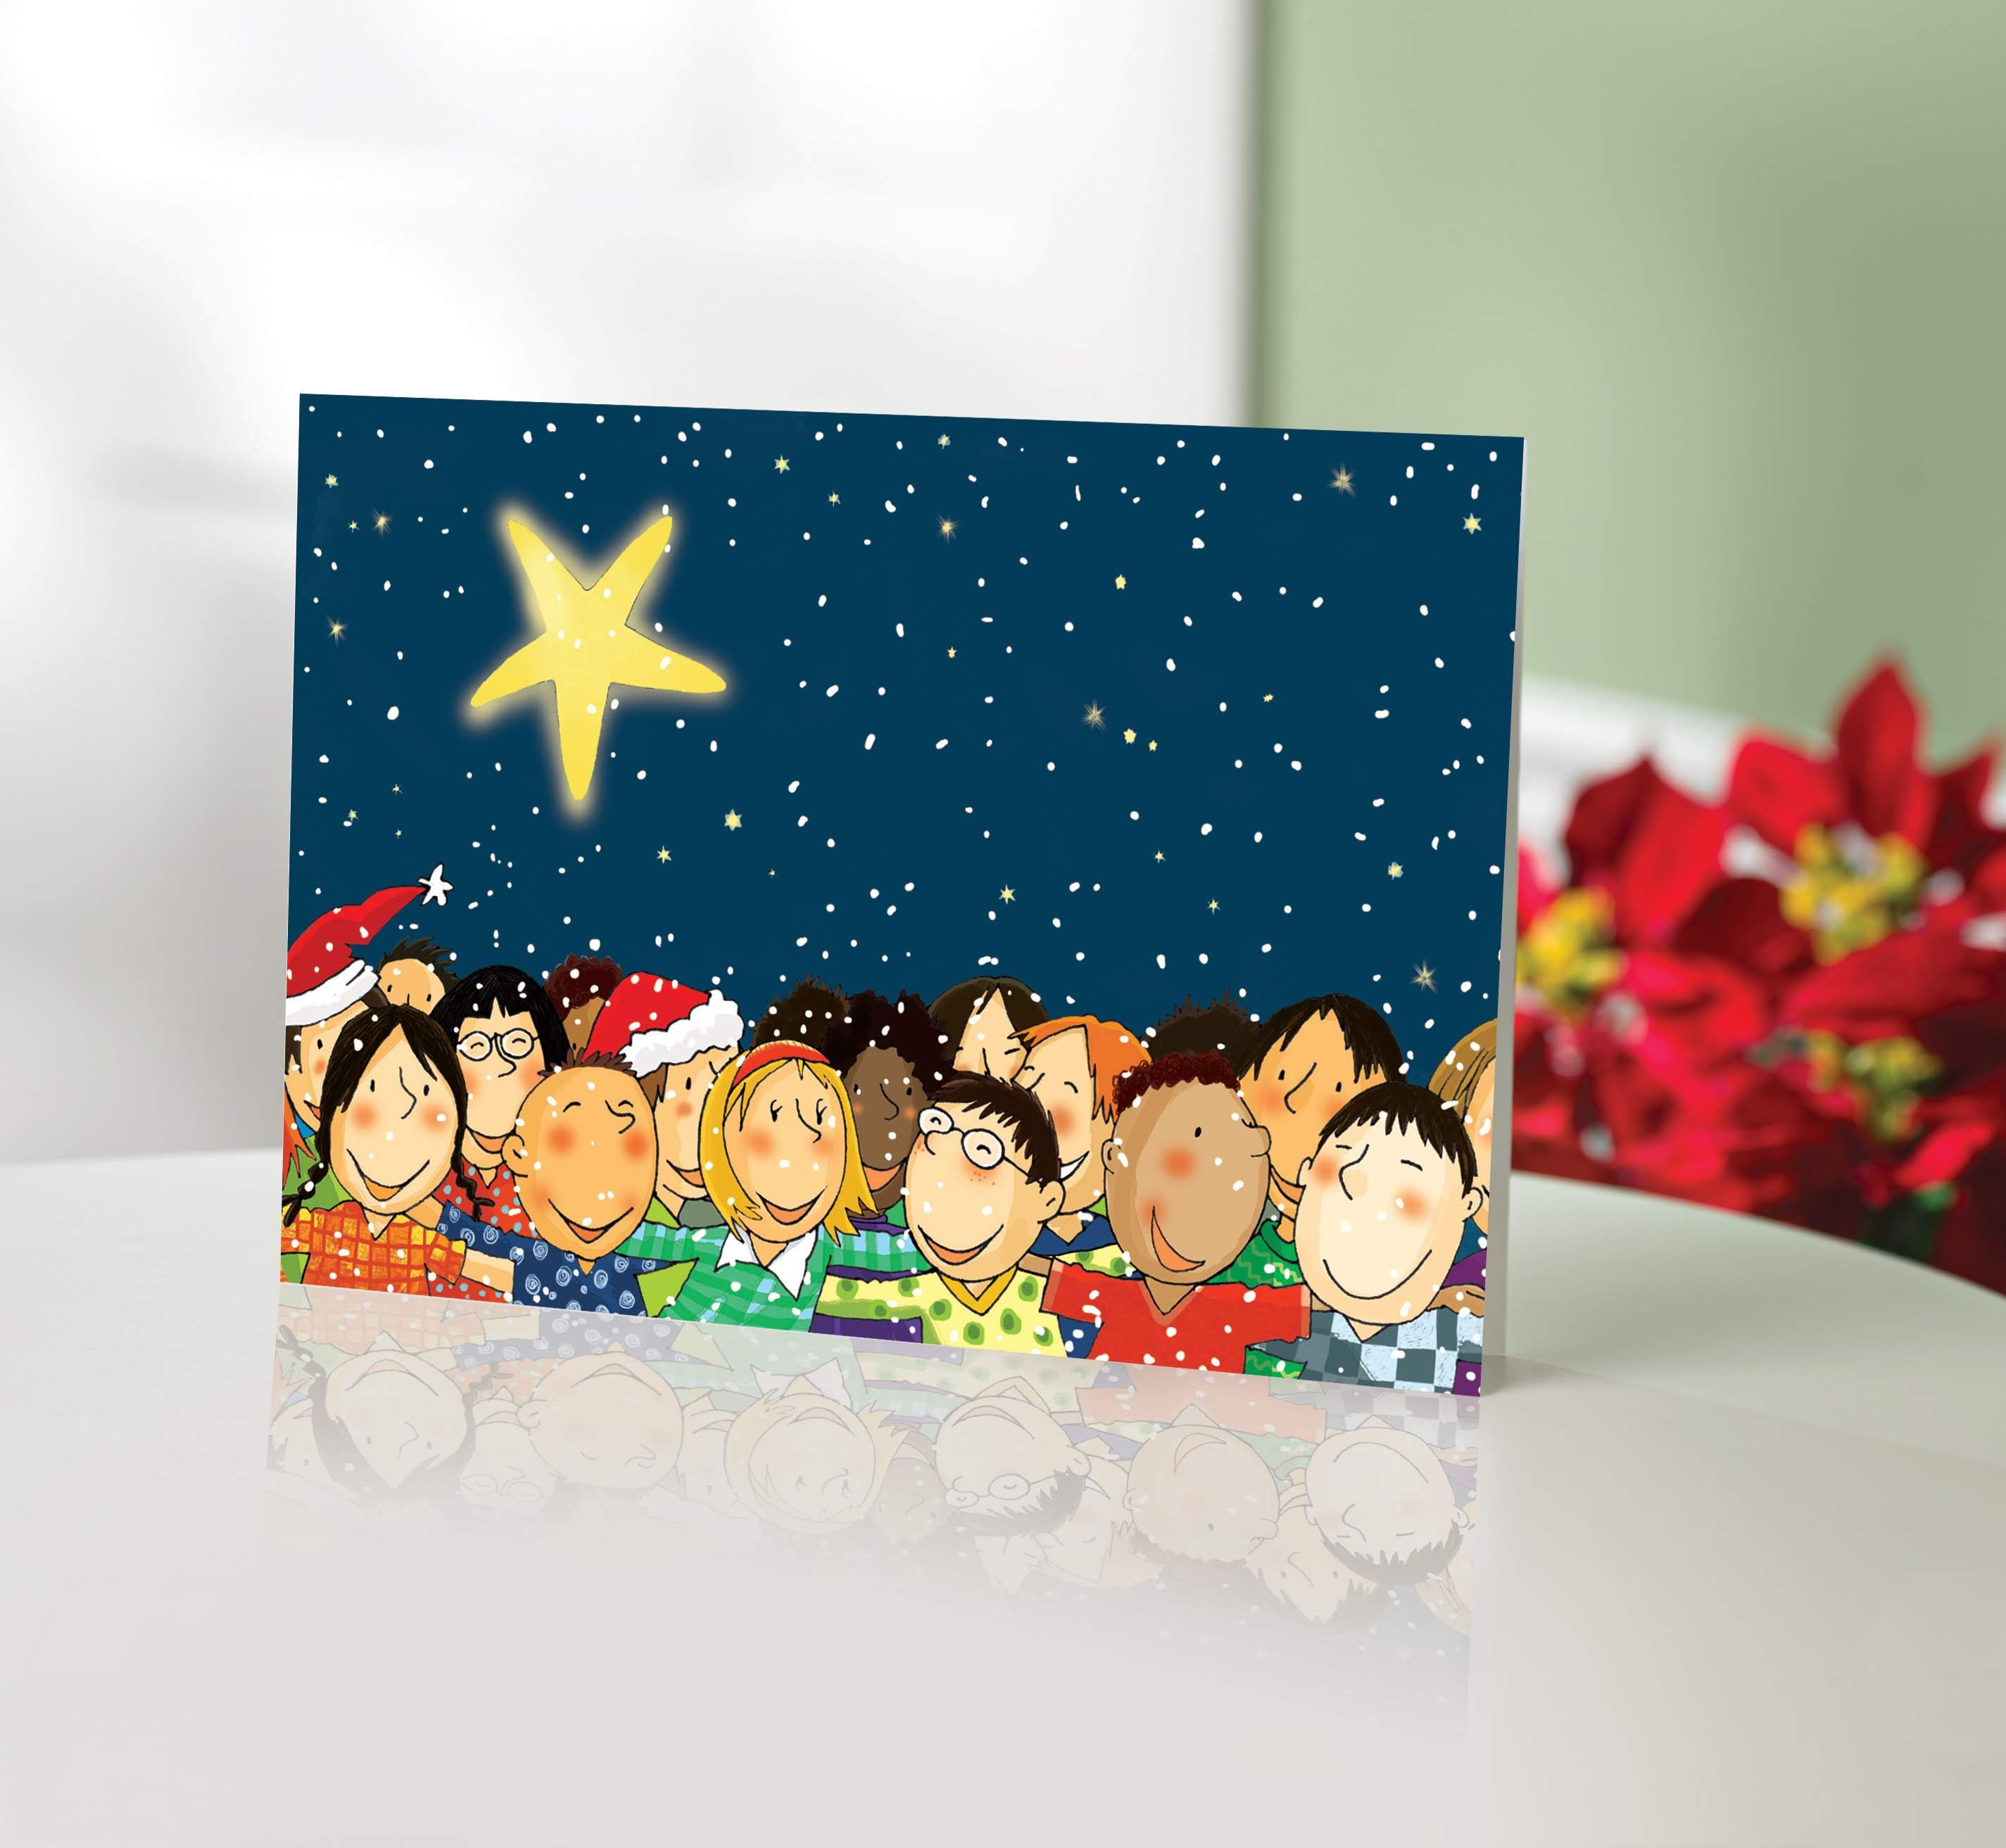 Unicef Charity Christmas Cards (Set of 10), 'Children